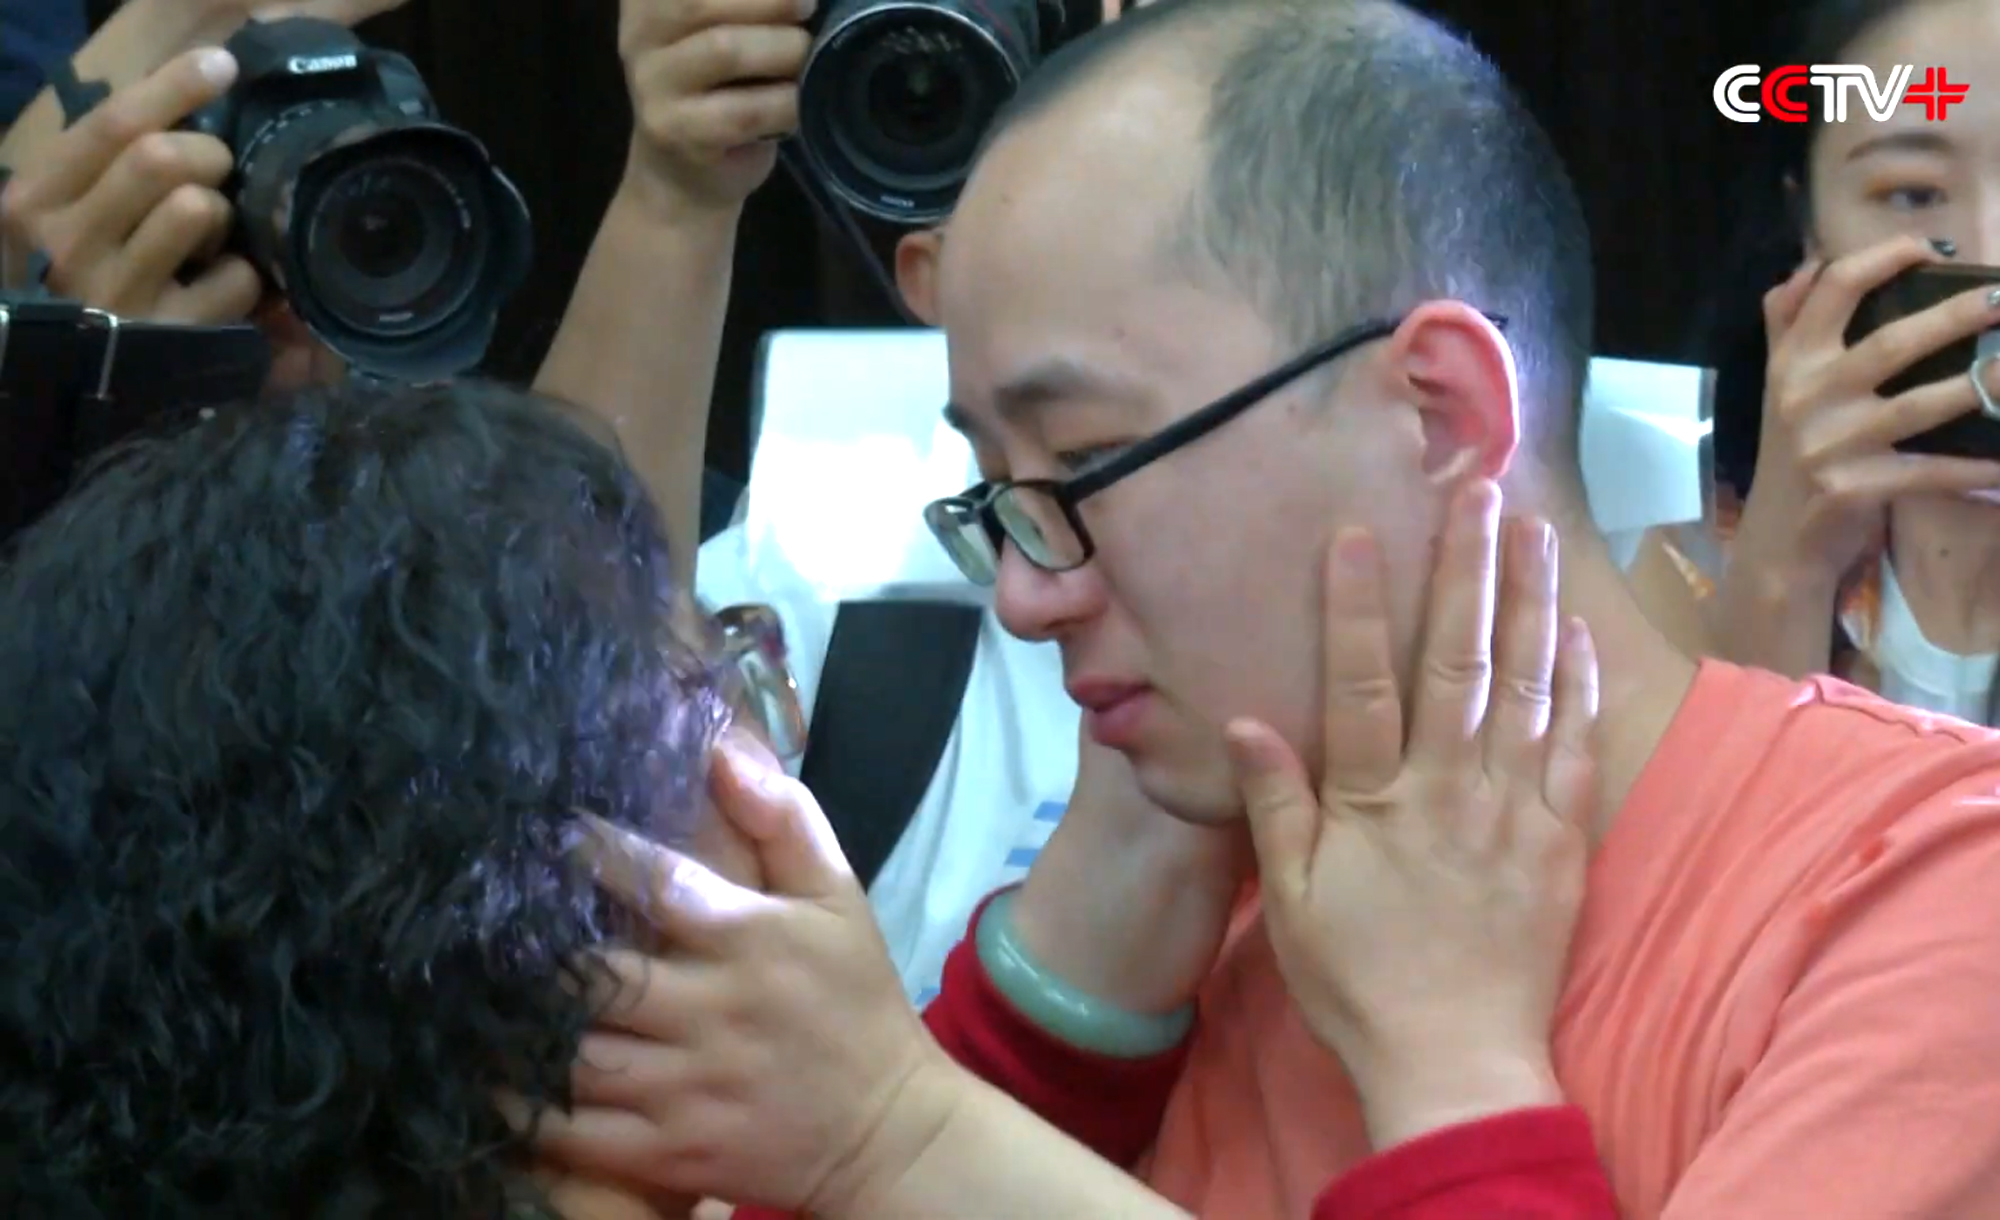 The moment Li Jingzhi saw her son for the first time in 32 years